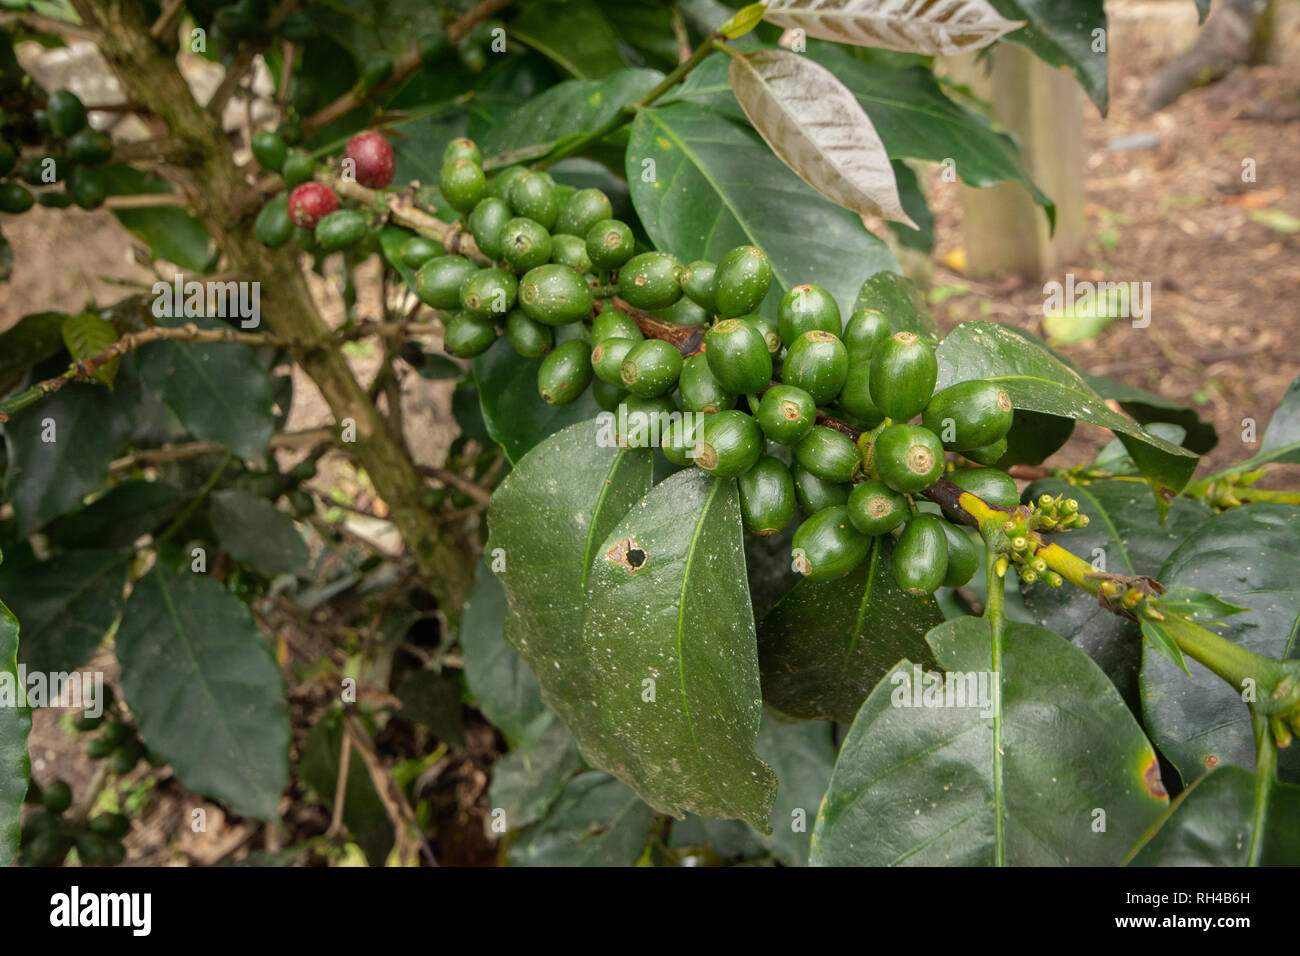 Unripe Green Coffee Cherries on a Coffee Bush in Peru Stock Photo